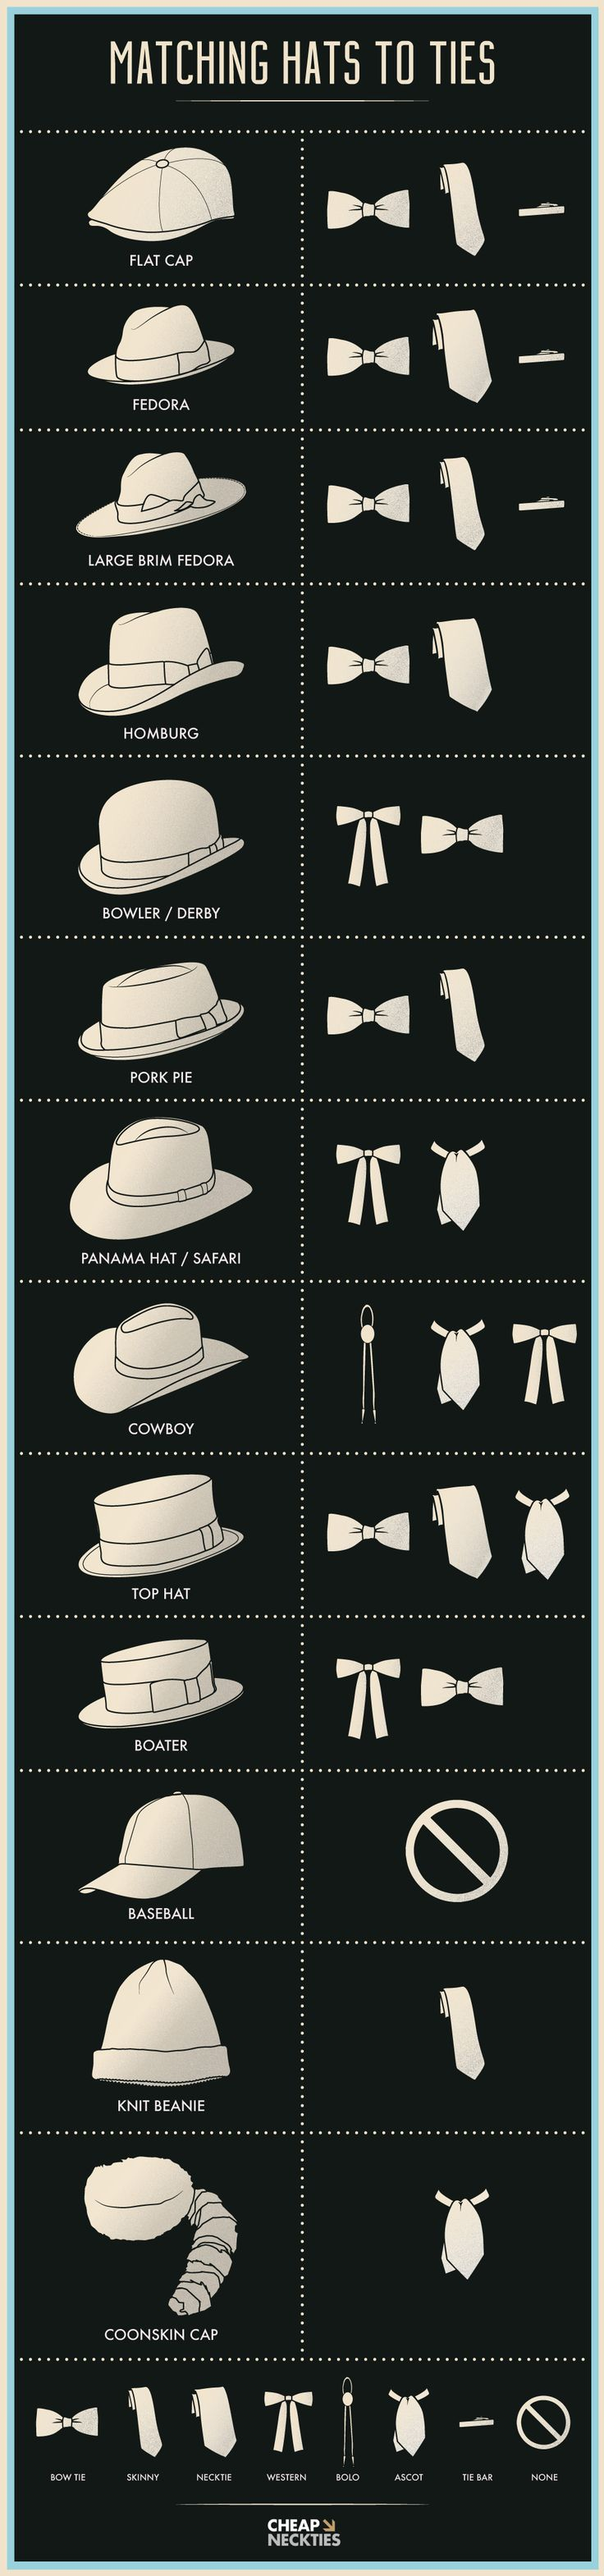 Fashion infographic : An infographic guide for matching